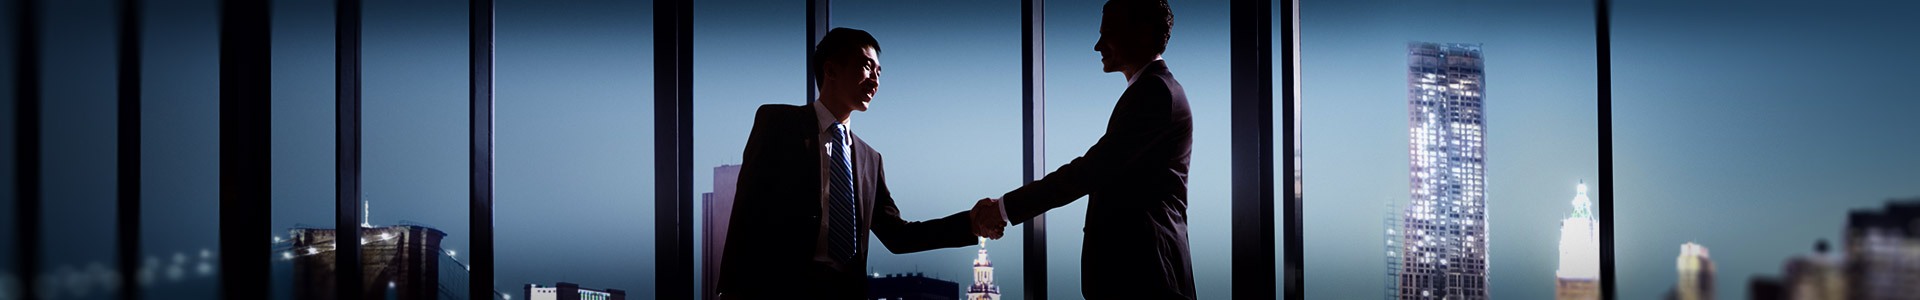 two businessmen shaking hands together at a desk in a office in business skyscraper